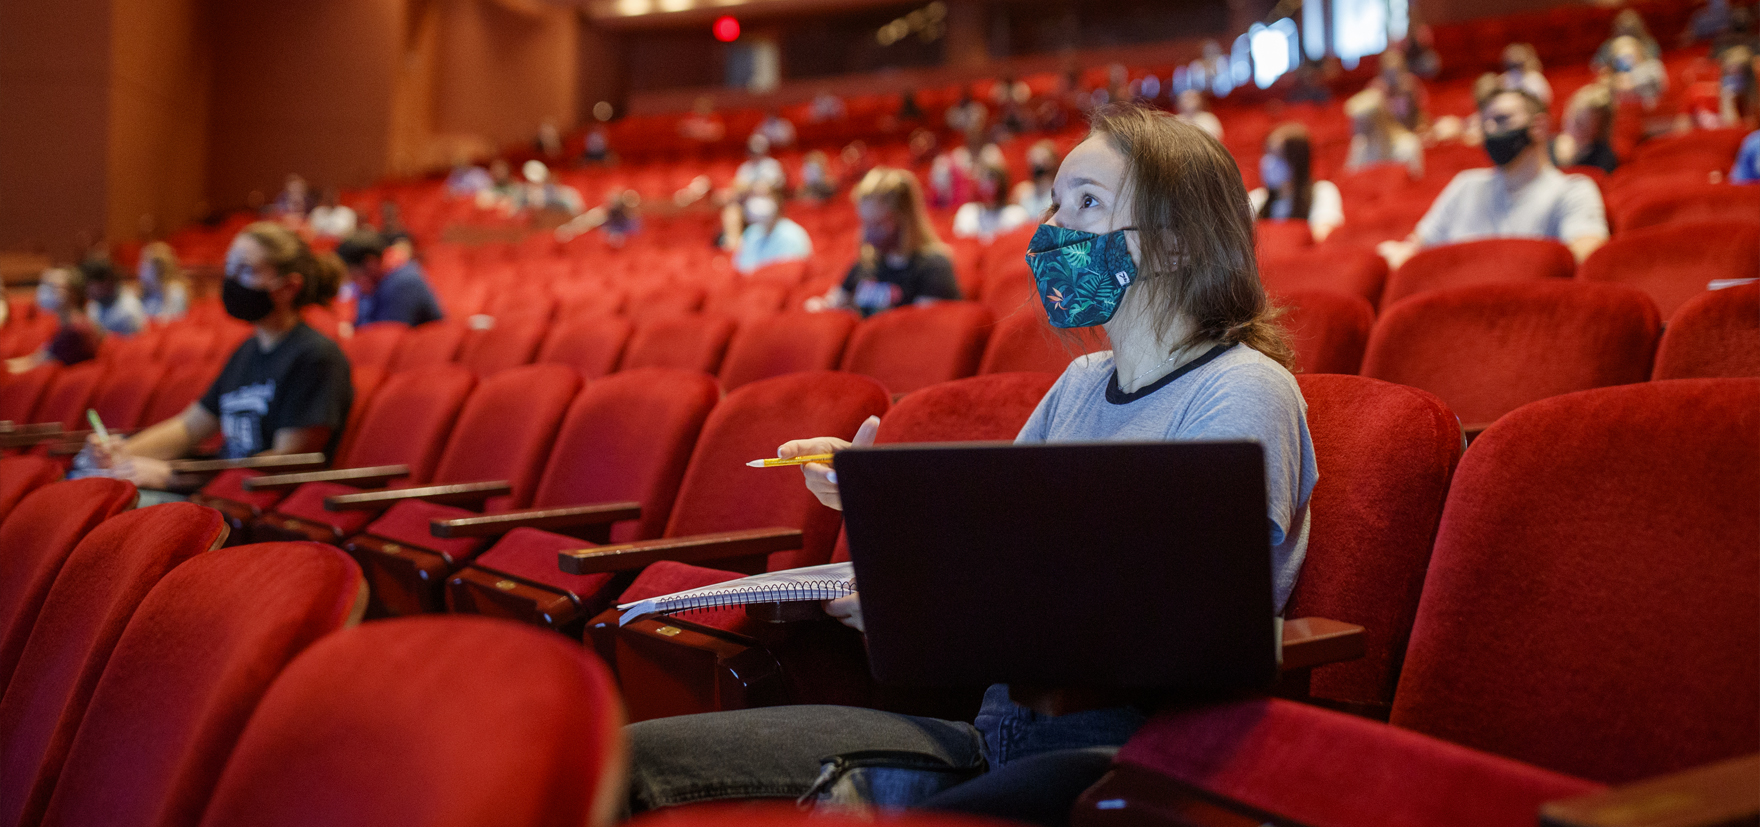 Student in a chemistry lecture hosted in the Lied Center